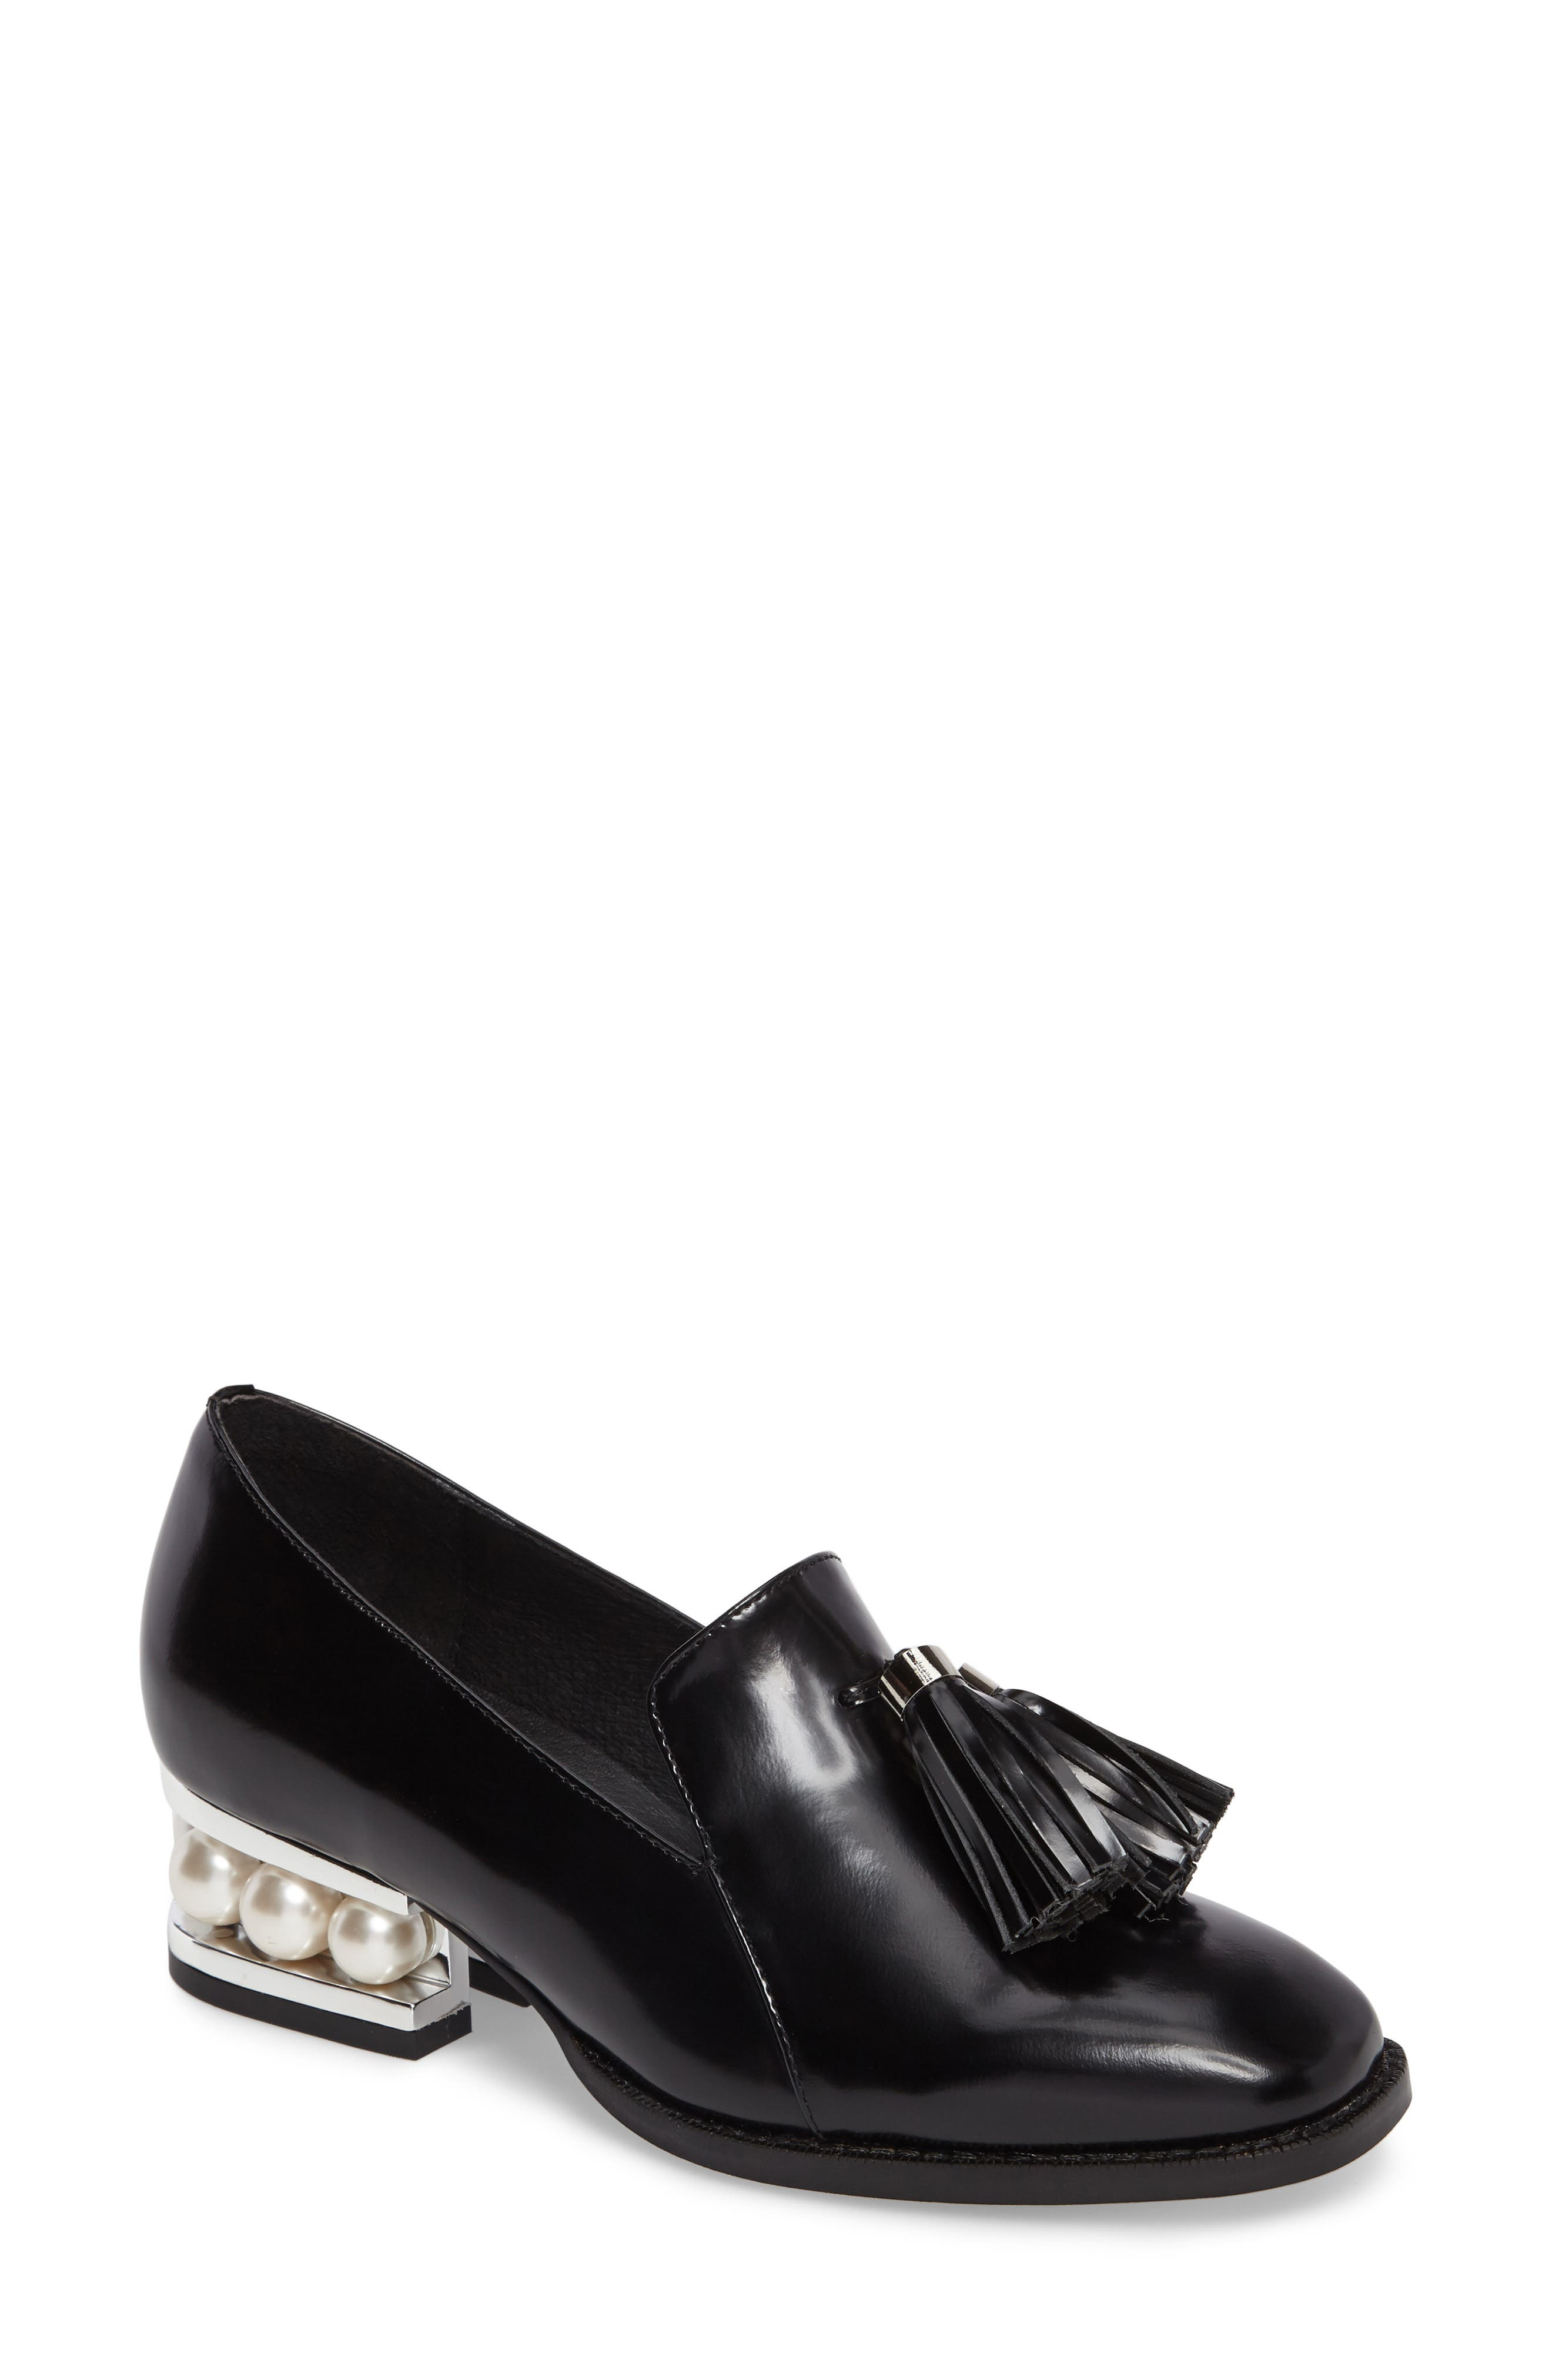 Lawford Pearly Heeled Loafer,                         Main,                         color, 001